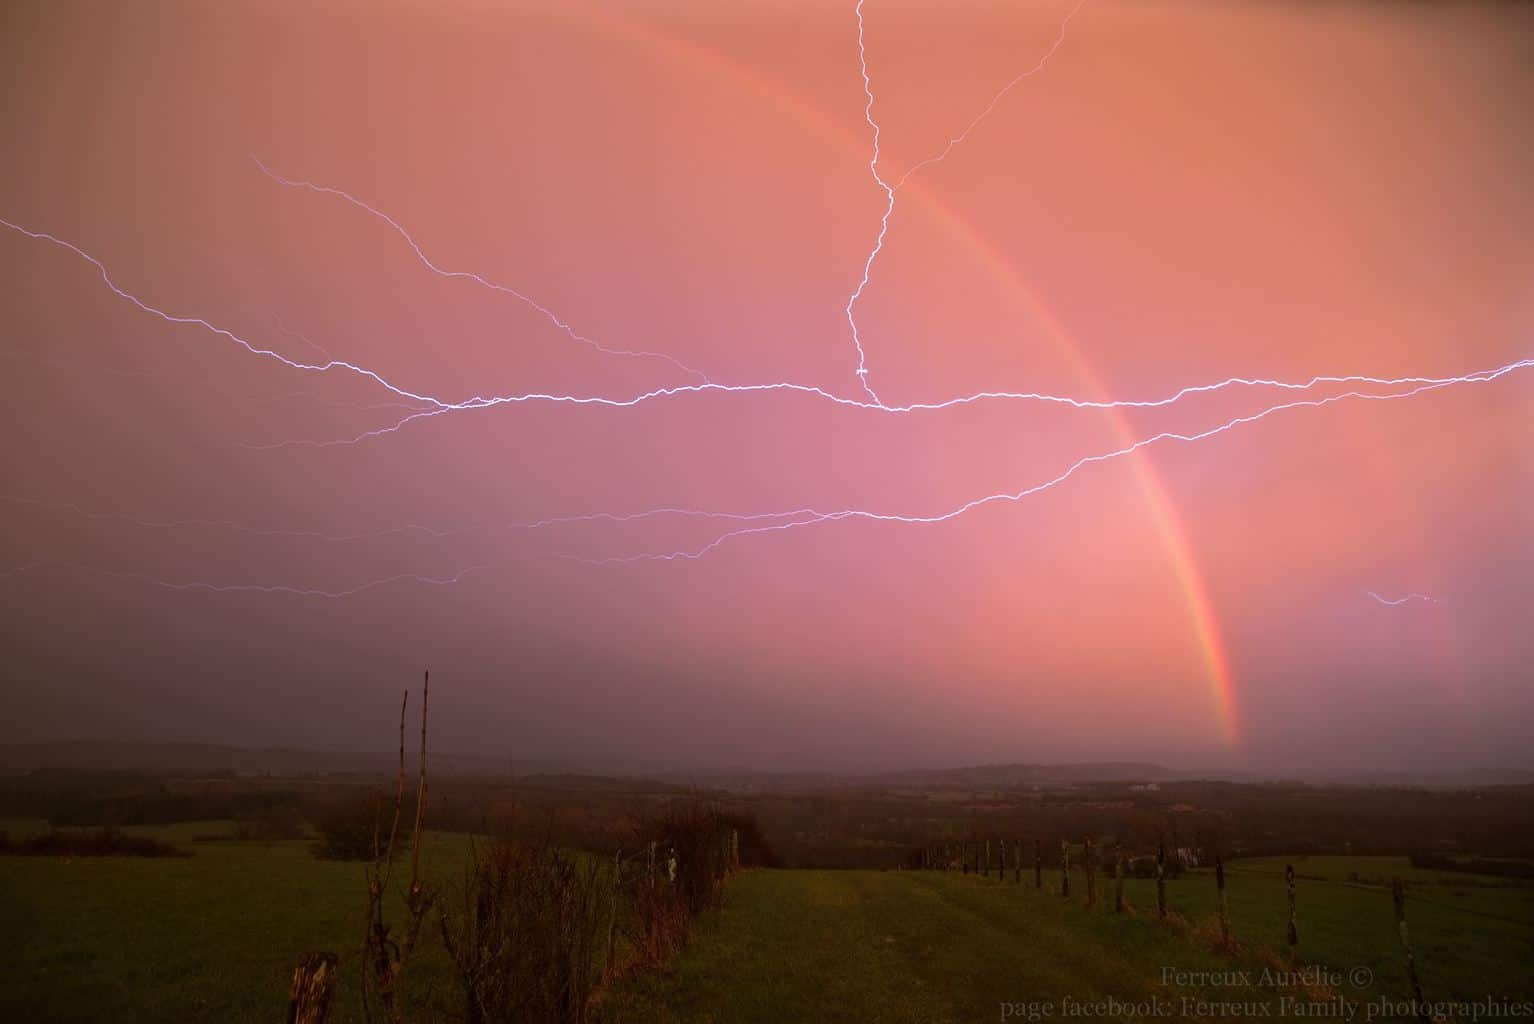 Sometimes after the passage of storms we like to observe them in the outflow, the lights are quite spectacular especially when the electrical activity is still present in the company of a beautiful rainbow in a sky of fire. east of France 04.04.2018